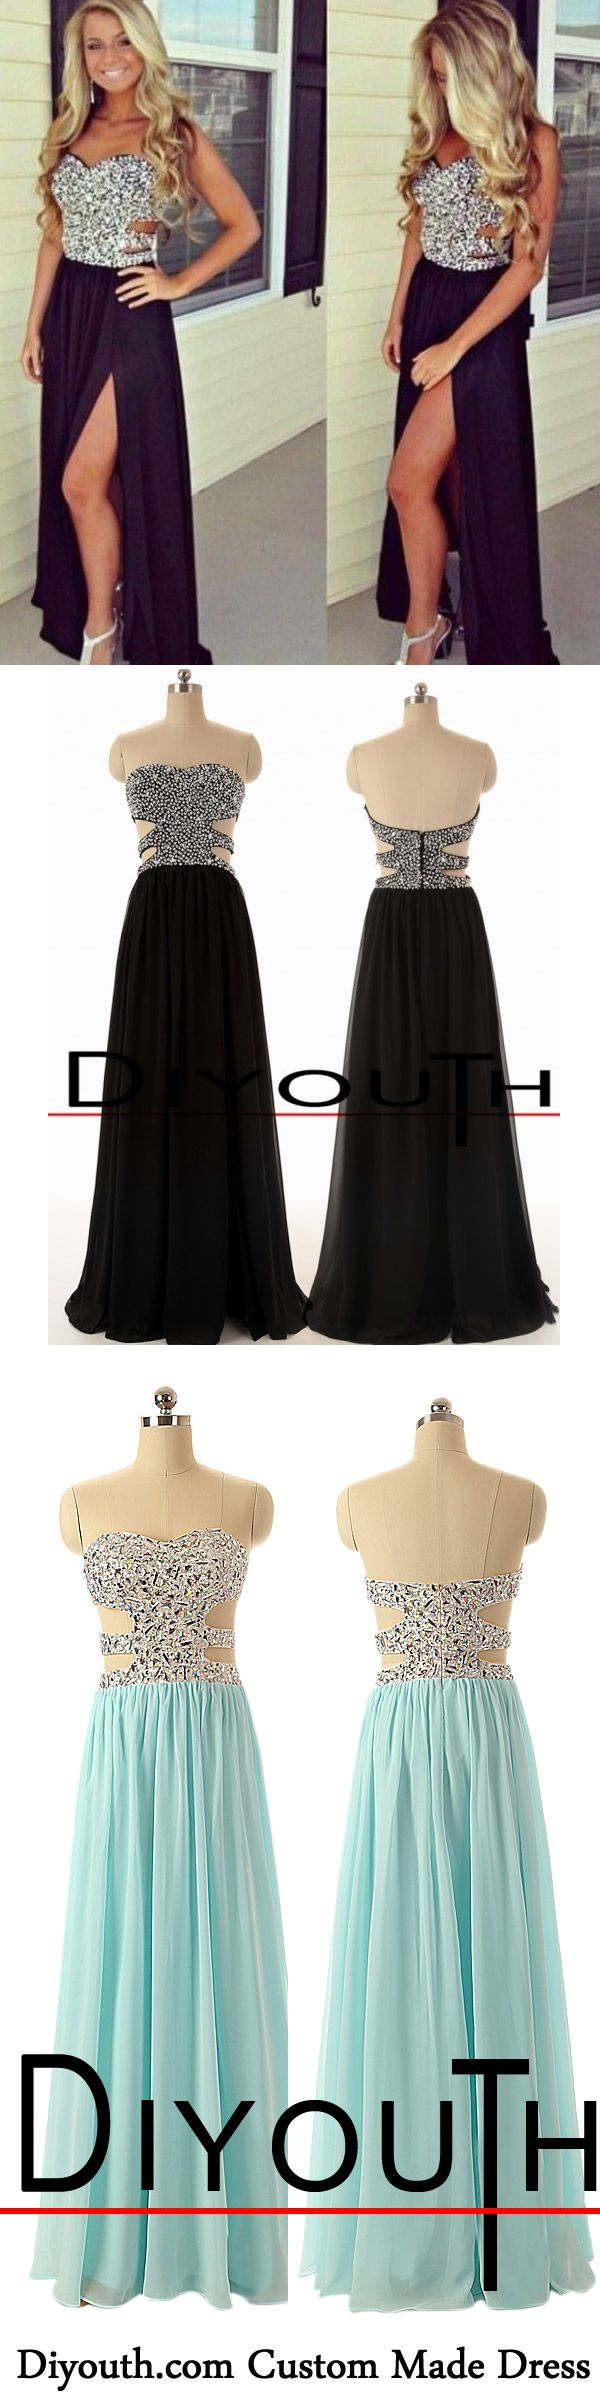 http://www.diyouth.com Backless Long Black Beaded Cutout Slit Evening Prom Dresses 2015,open back evening dresses,Evening Dresses,beading Cocktail Dresses,sexy Graduation Dresses Sweet 16 Dresses,evening gowns cheap,mint green prom dresses